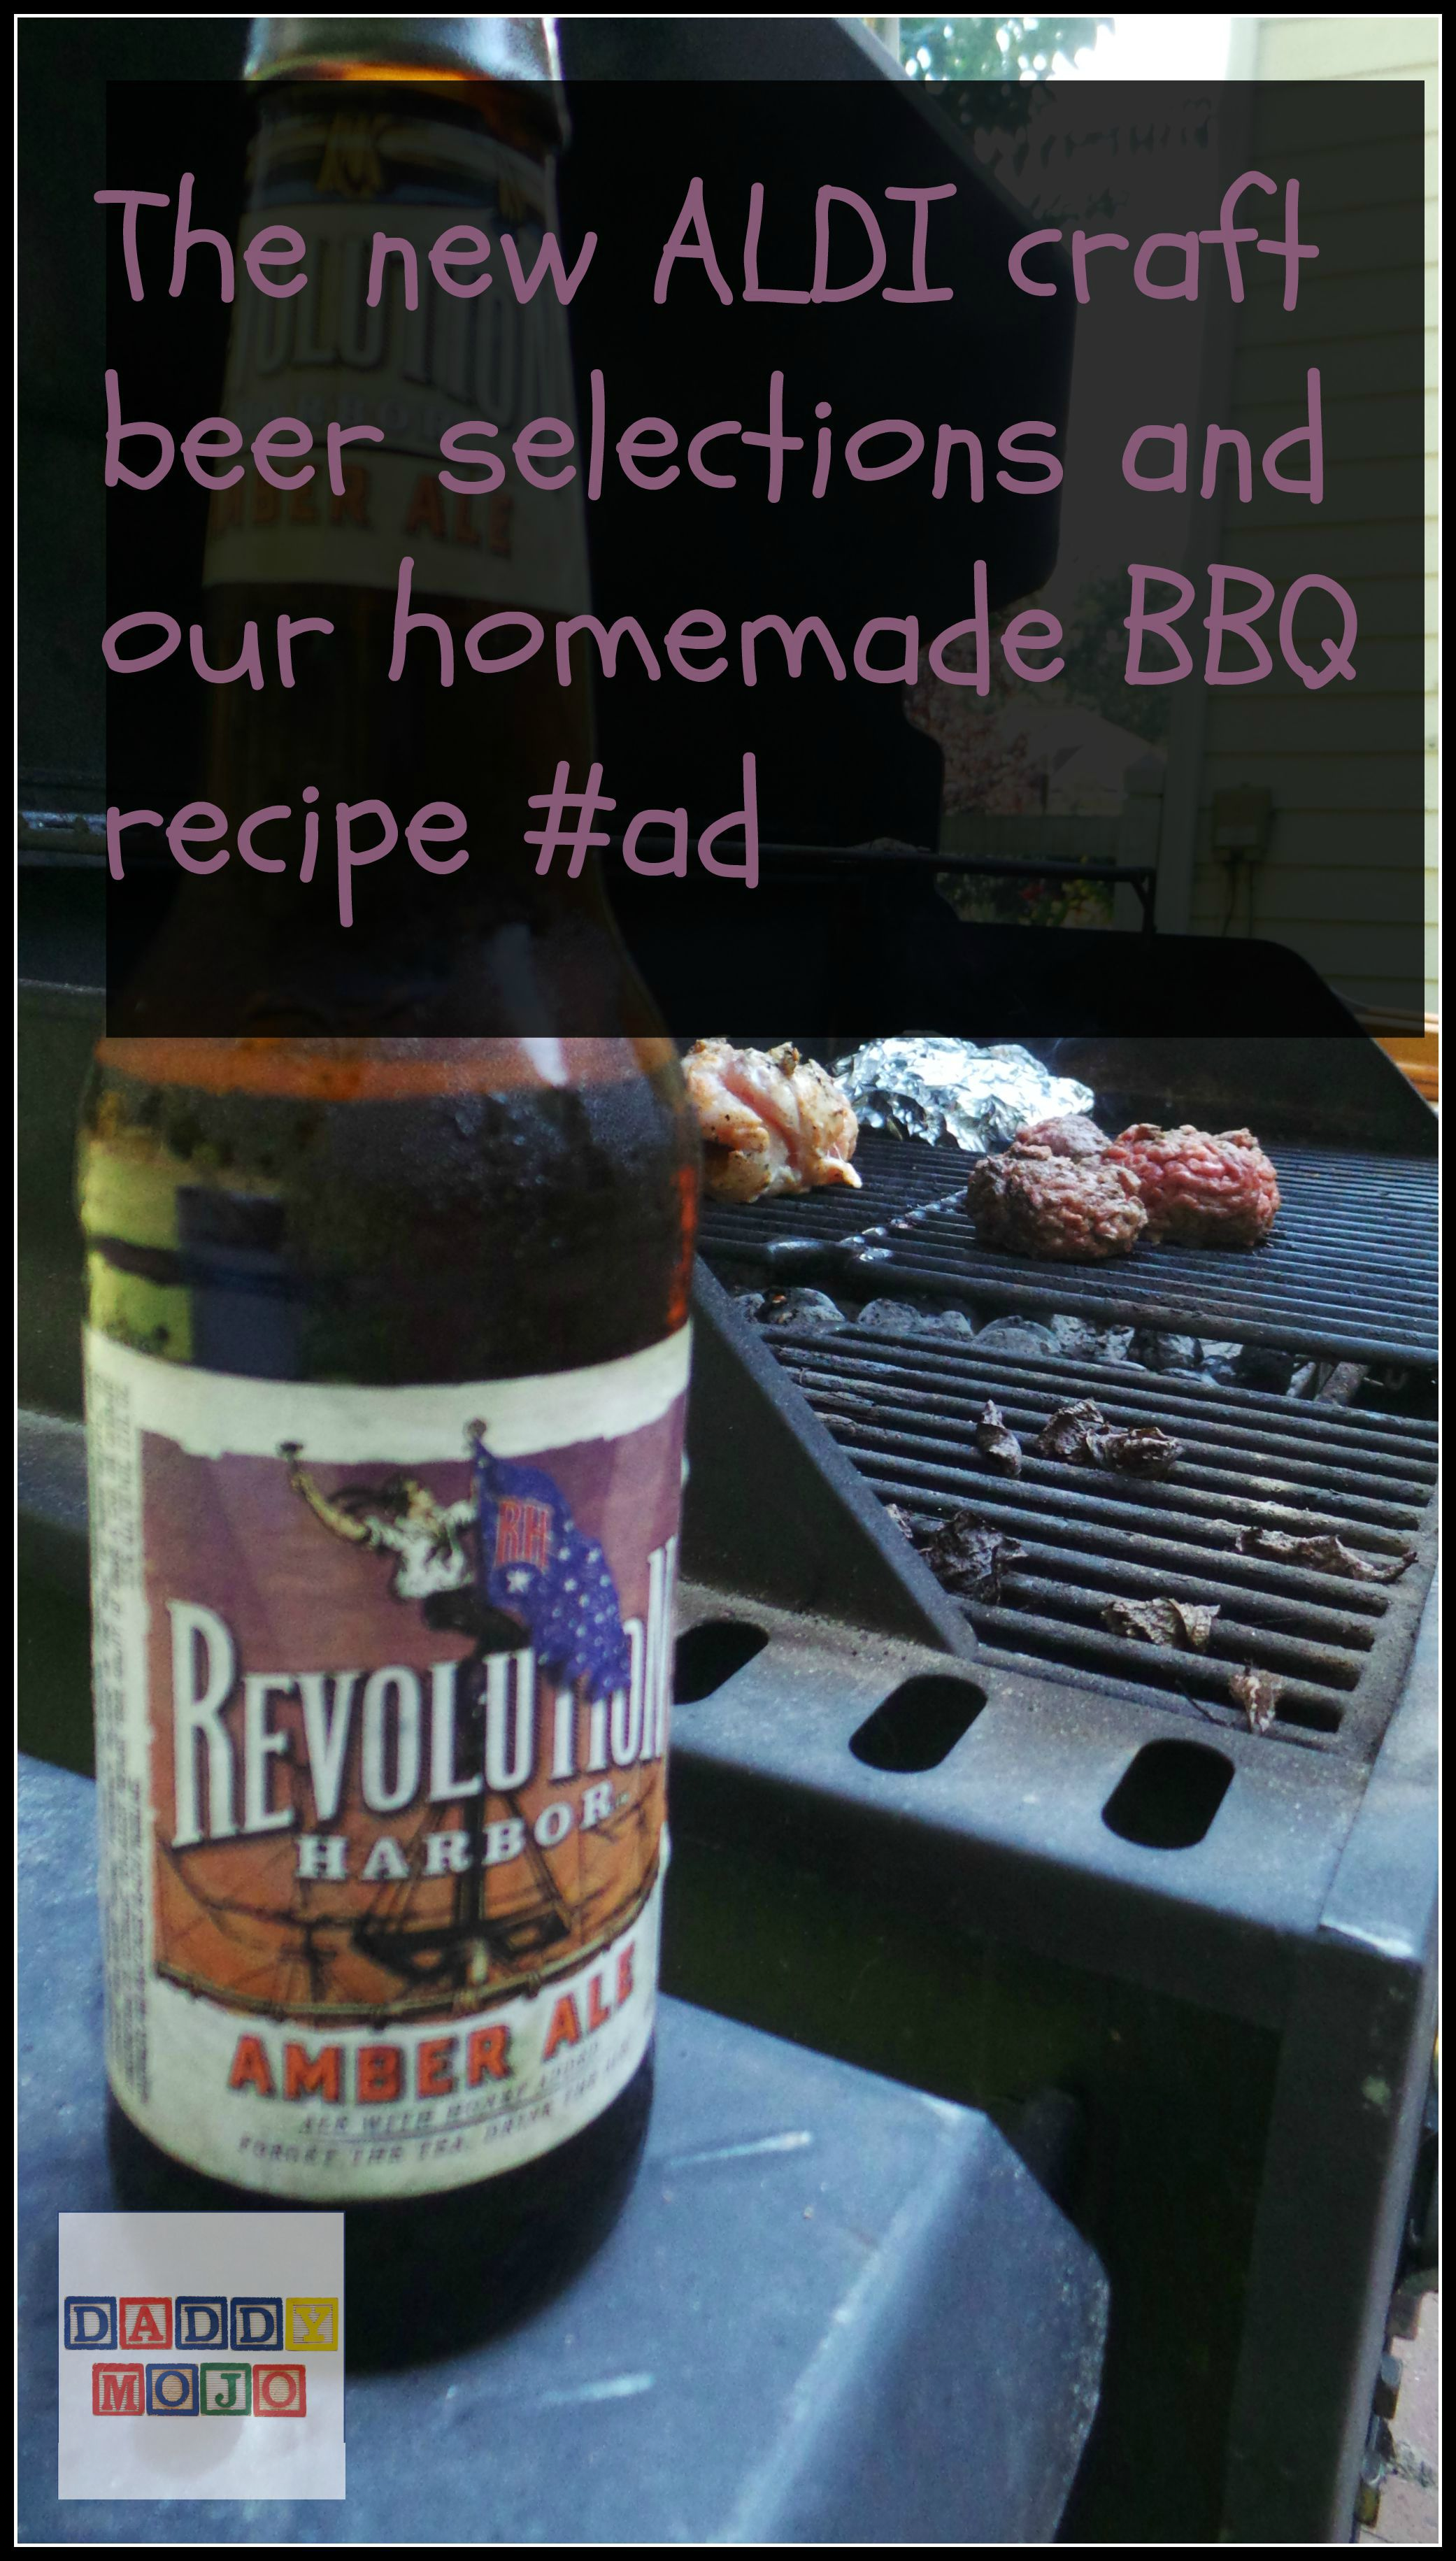 Barbecue Aldi The New Aldi Extensive Beer Selection And Our Homemade Bbq Recipe